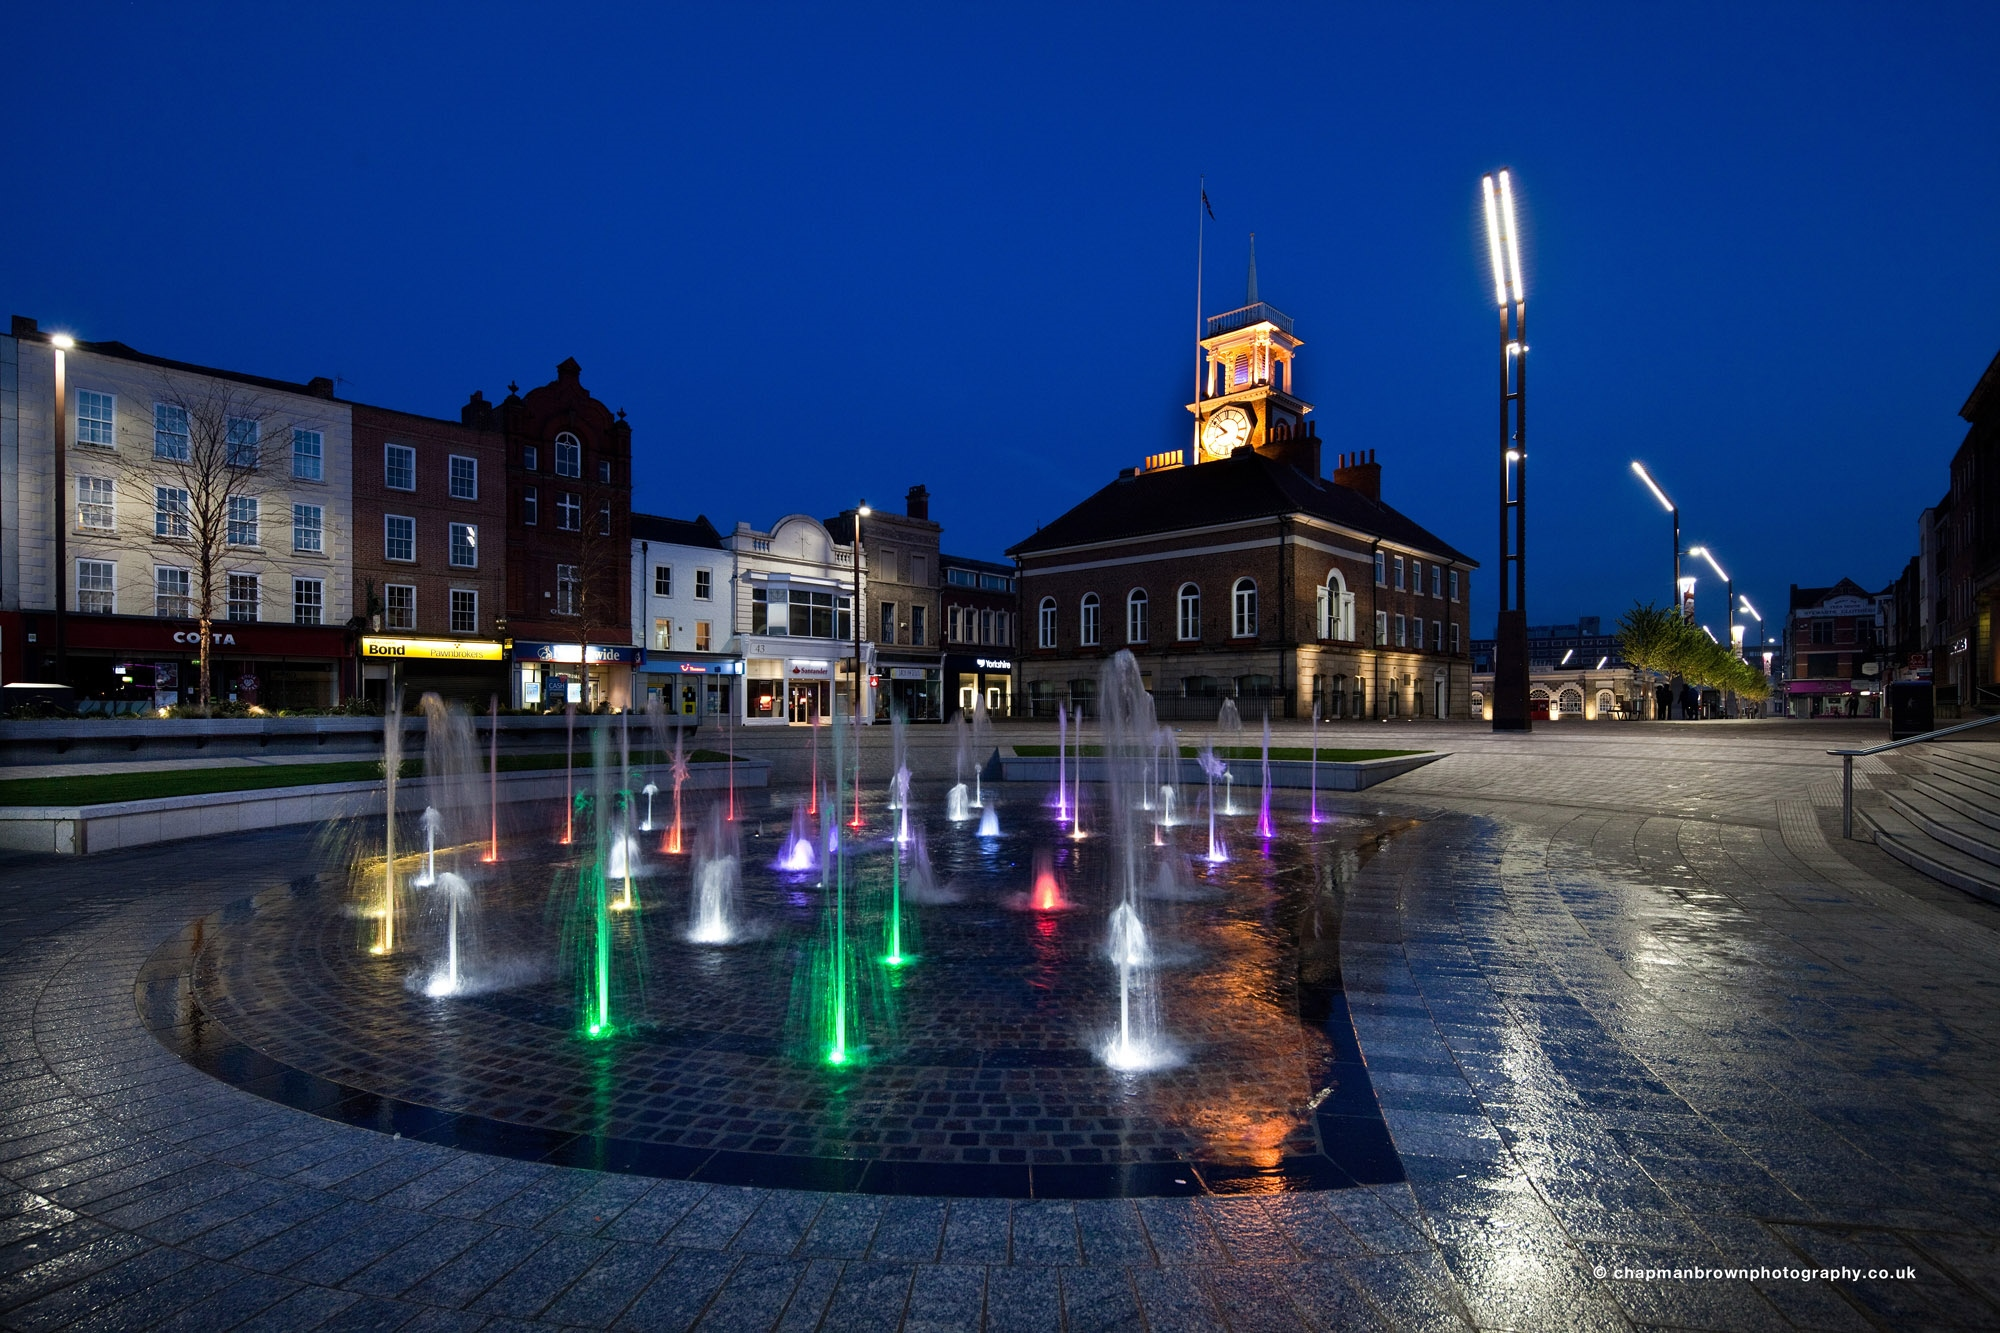 About Stockton-on-Tees